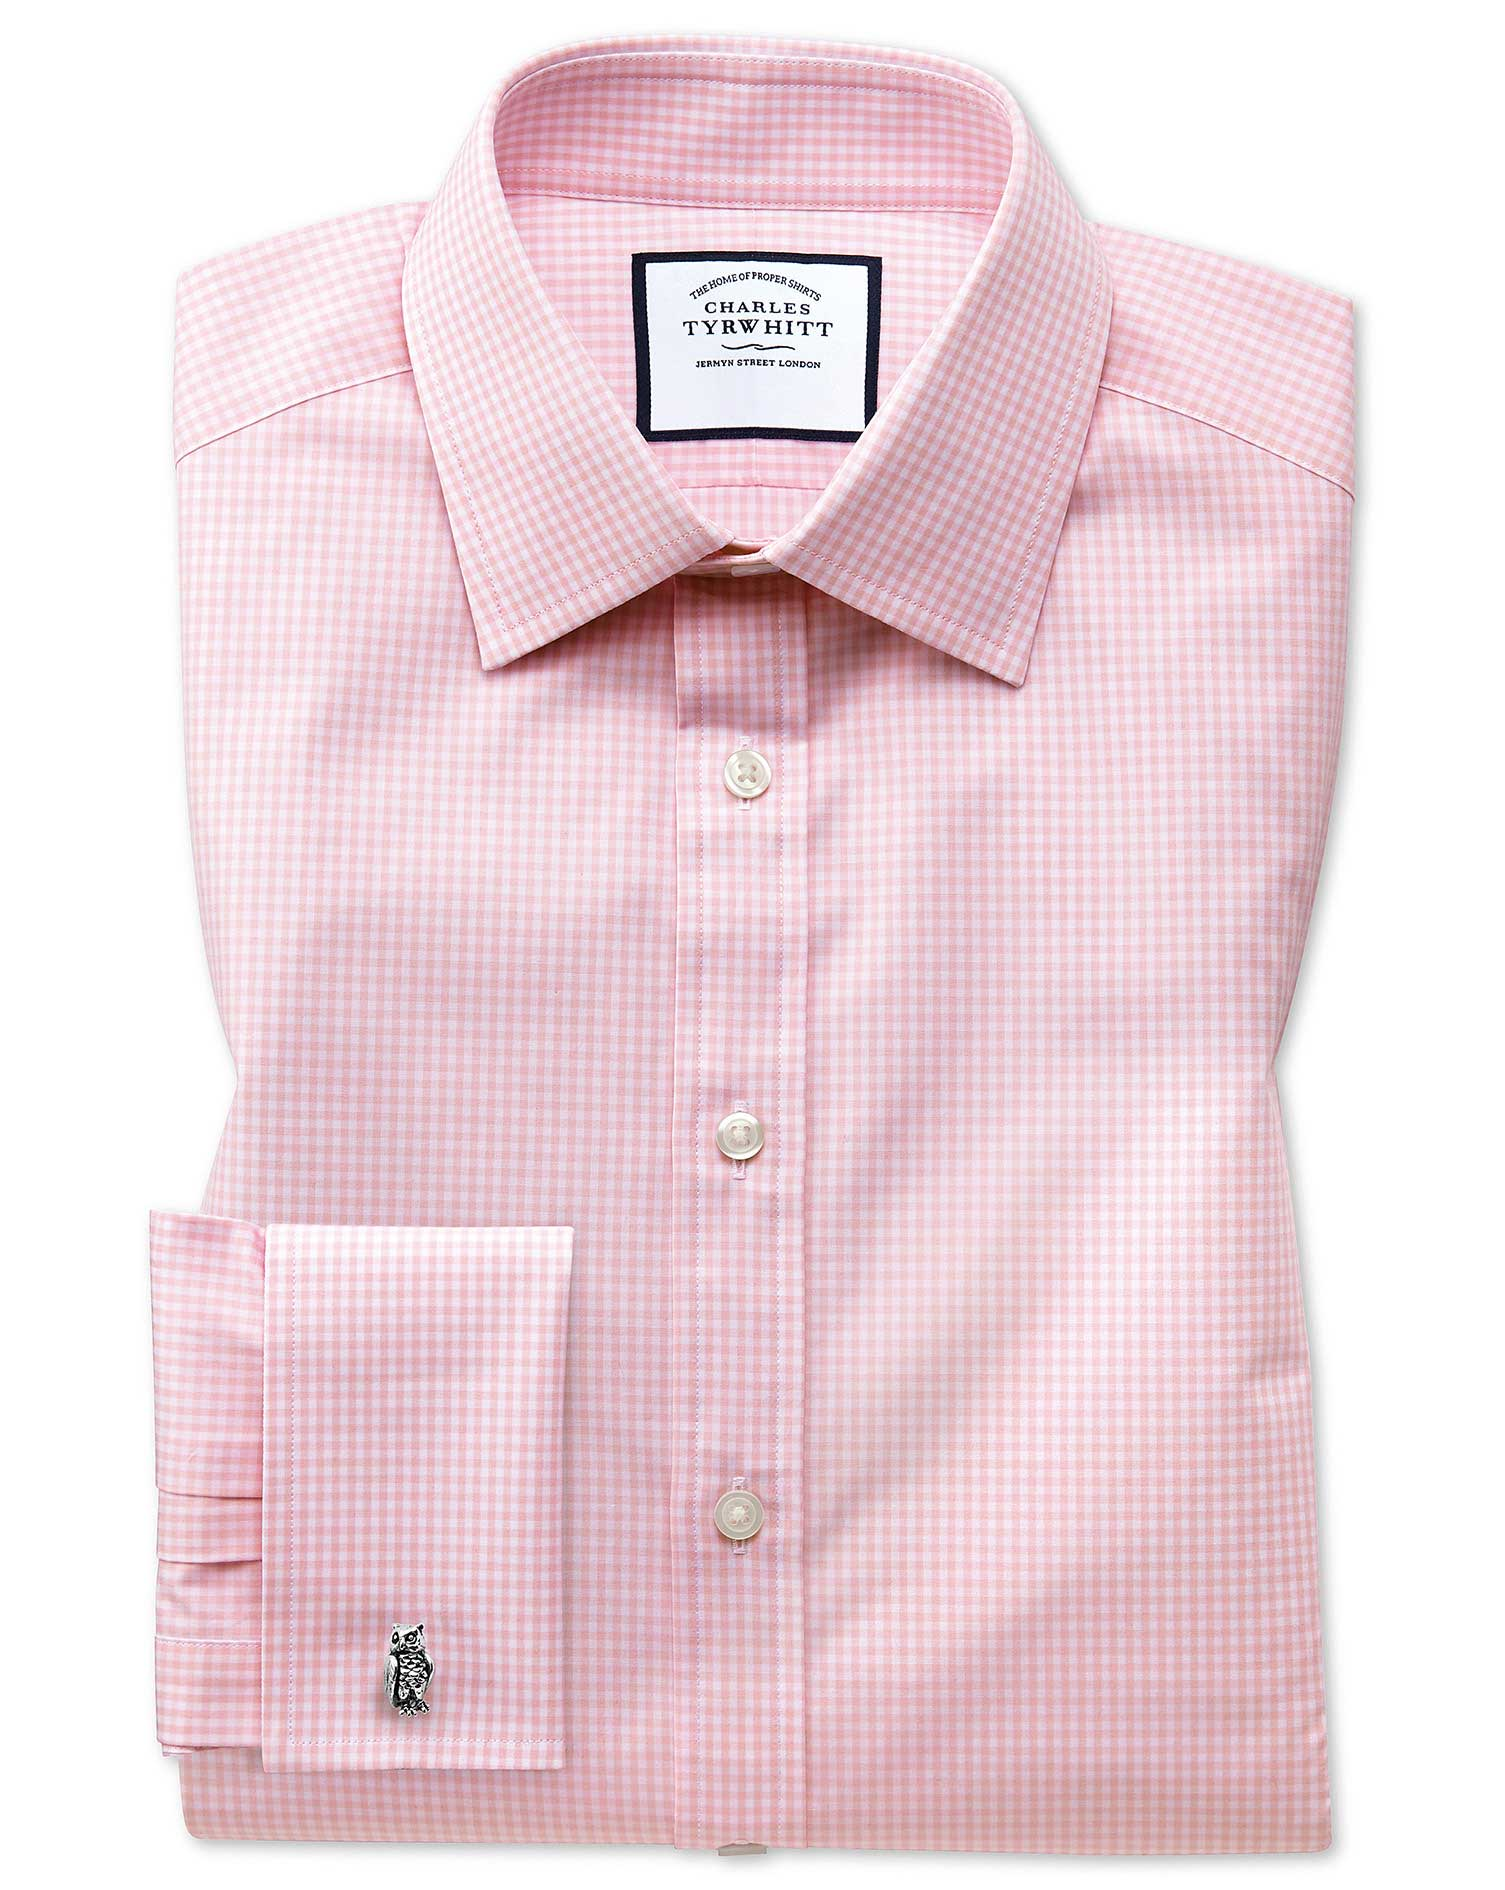 Slim Fit Small Gingham Light Pink Cotton Formal Shirt Single Cuff Size 16.5/33 by Charles Tyrwhitt